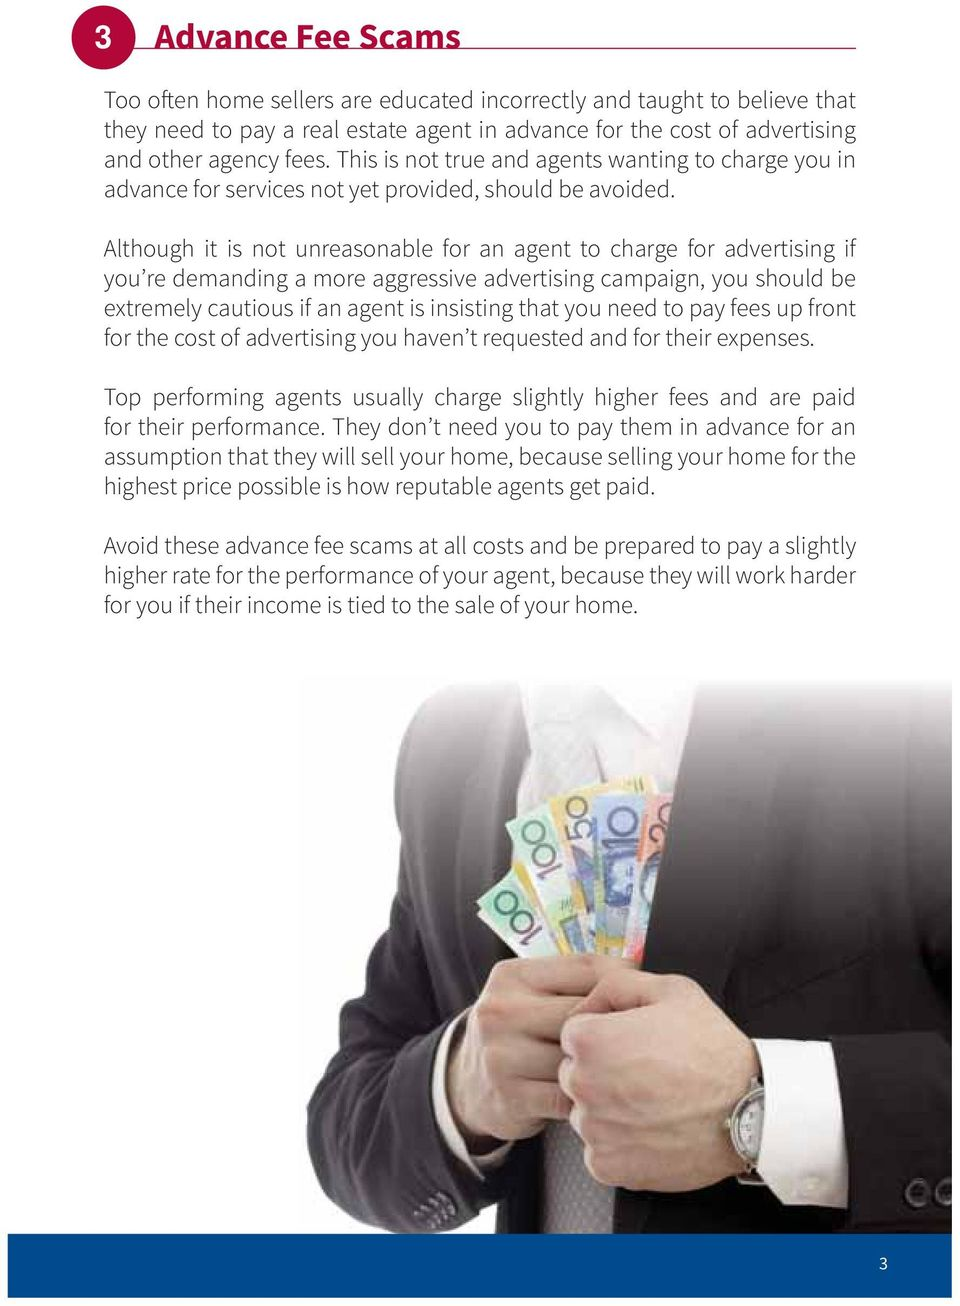 Although it is not unreasonable for an agent to charge for advertising if you re demanding a more aggressive advertising campaign, you should be extremely cautious if an agent is insisting that you